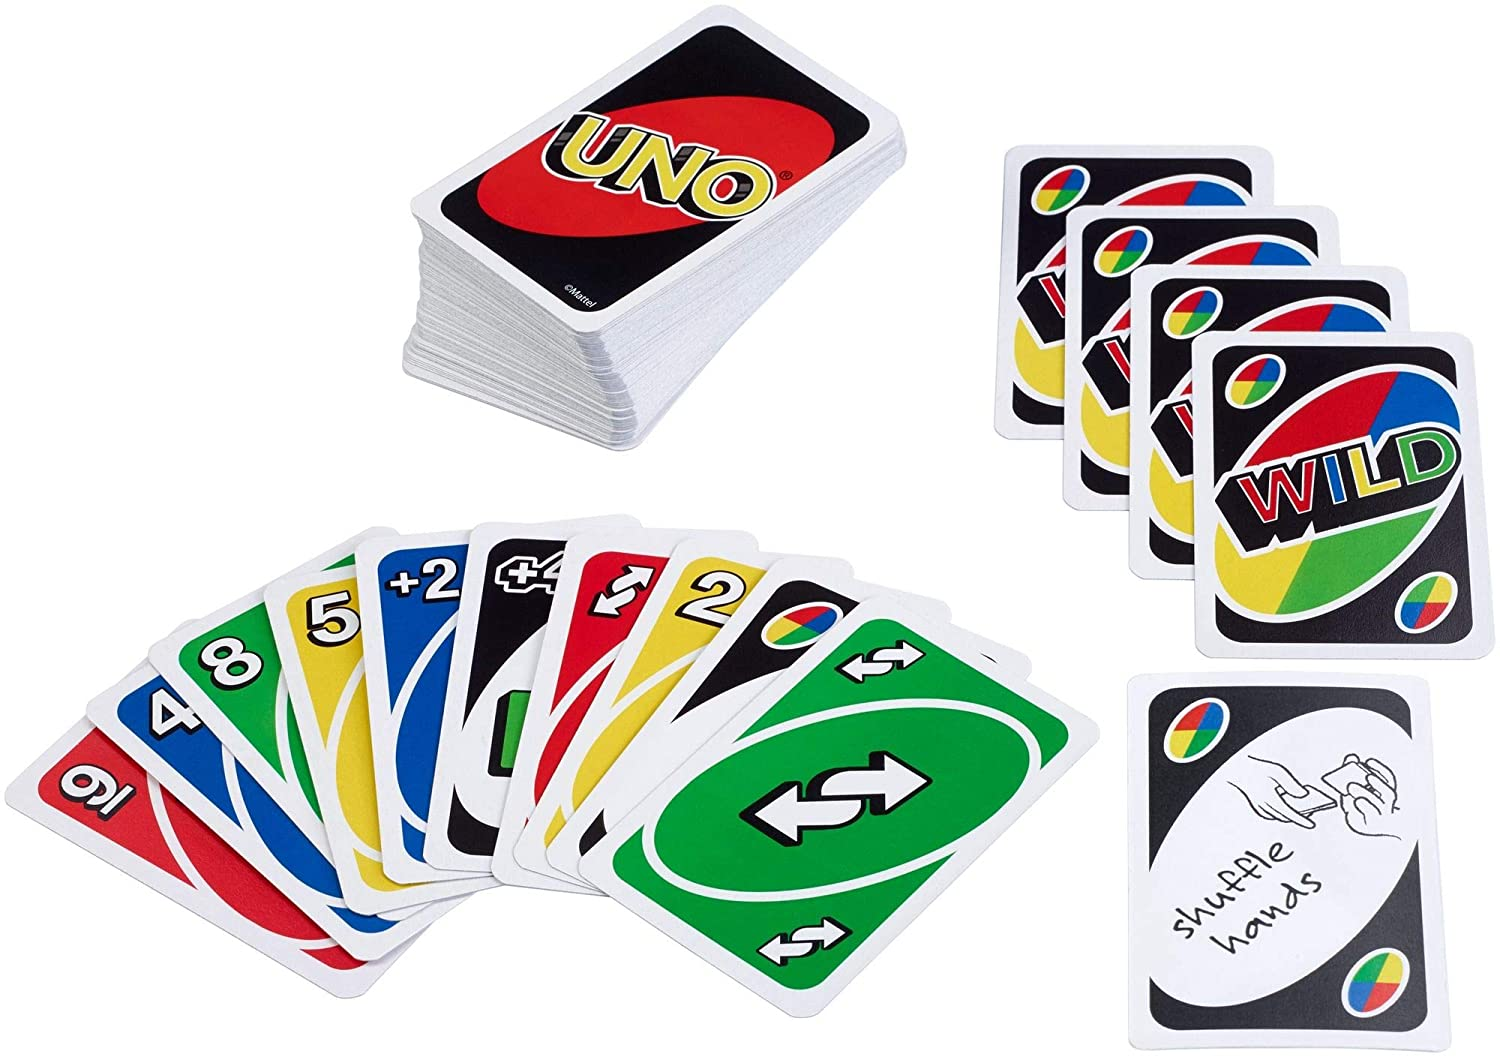 Uno Card Game on Sale for $3.9...